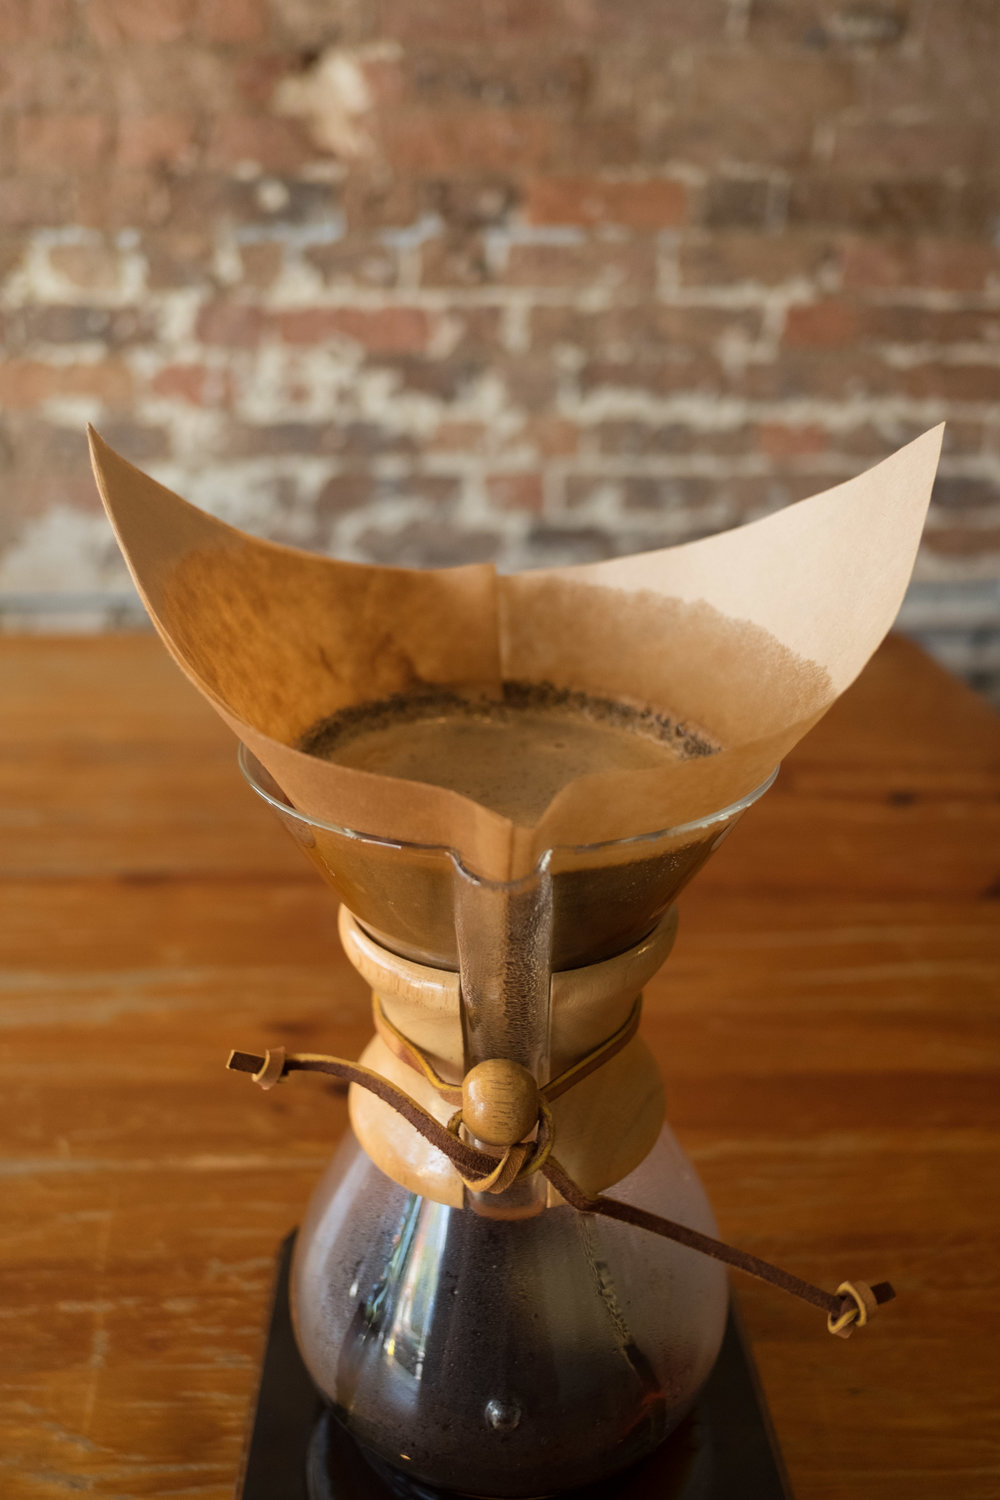 Brewing Chemex at home